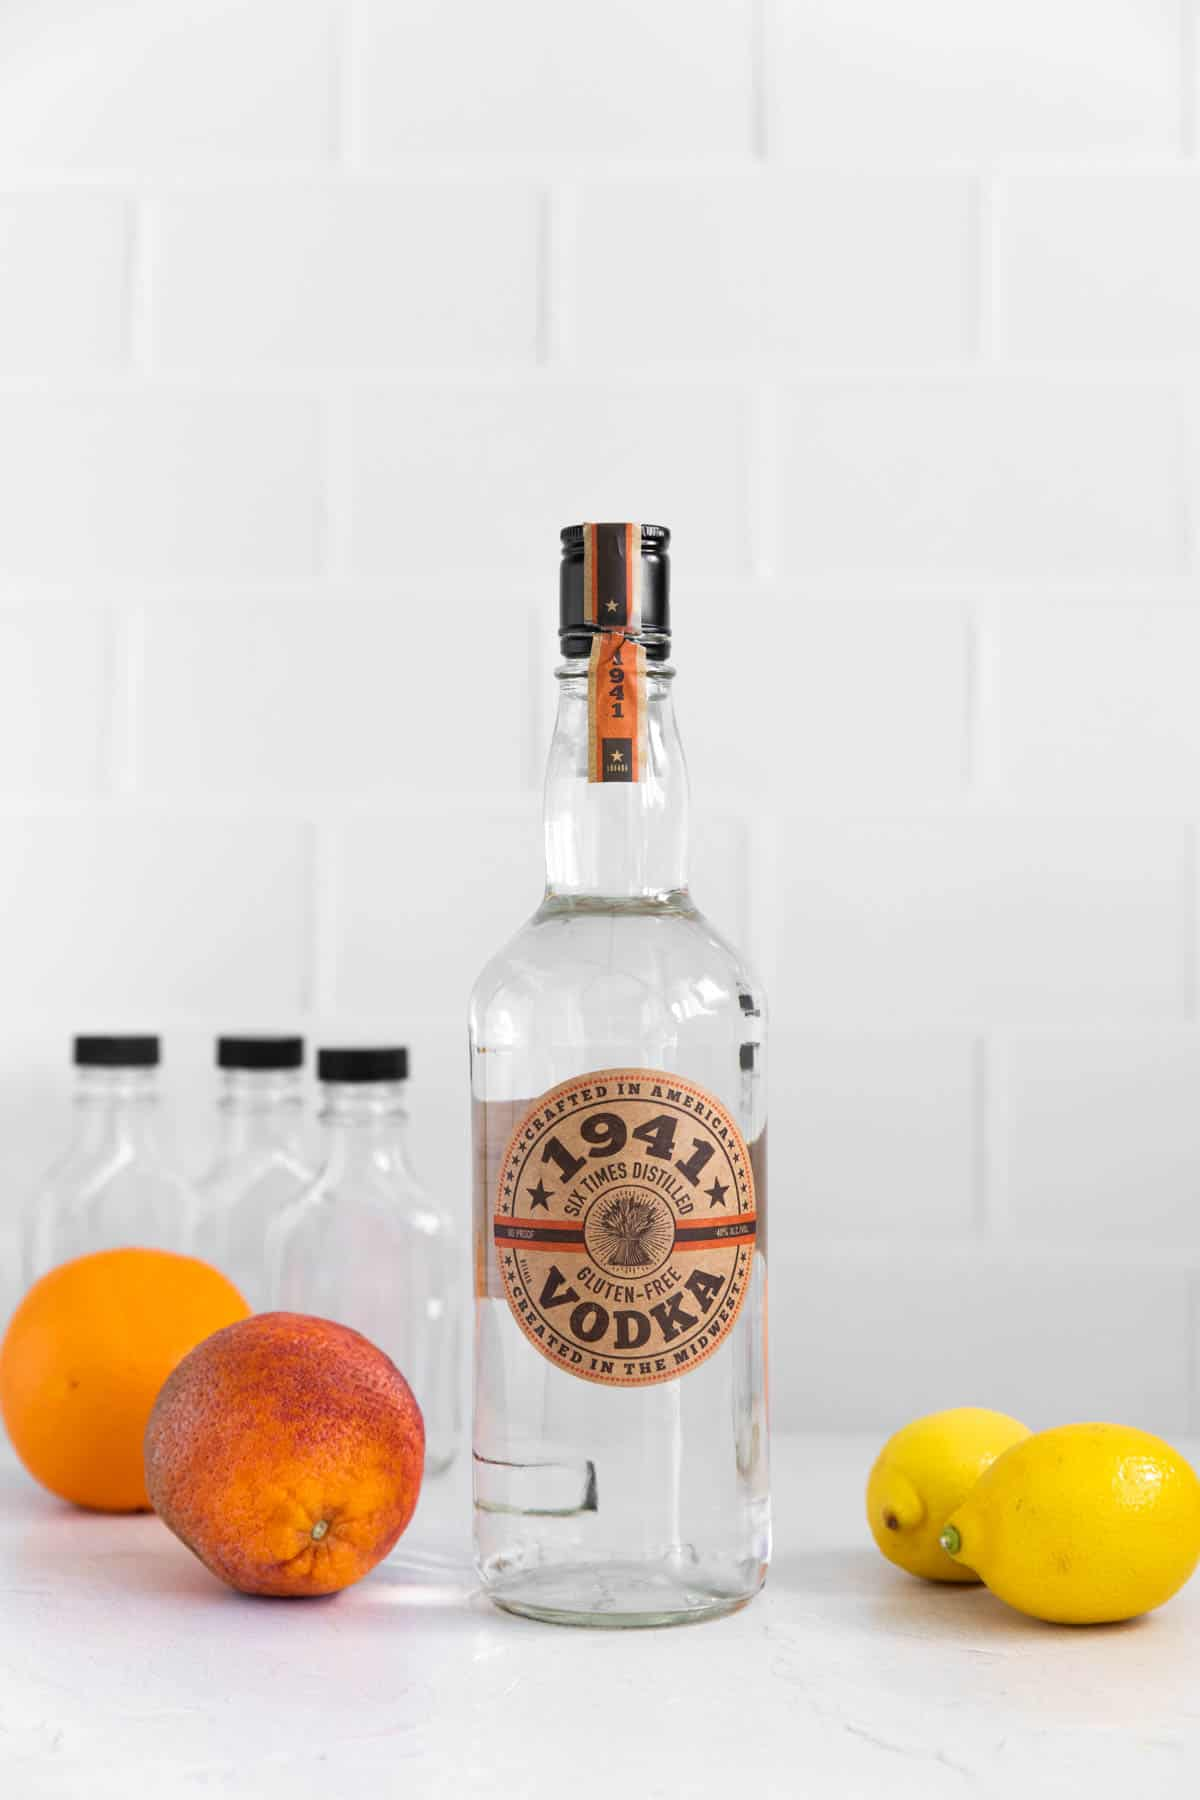 a bottle of vodka and citrus fruit for the recipe